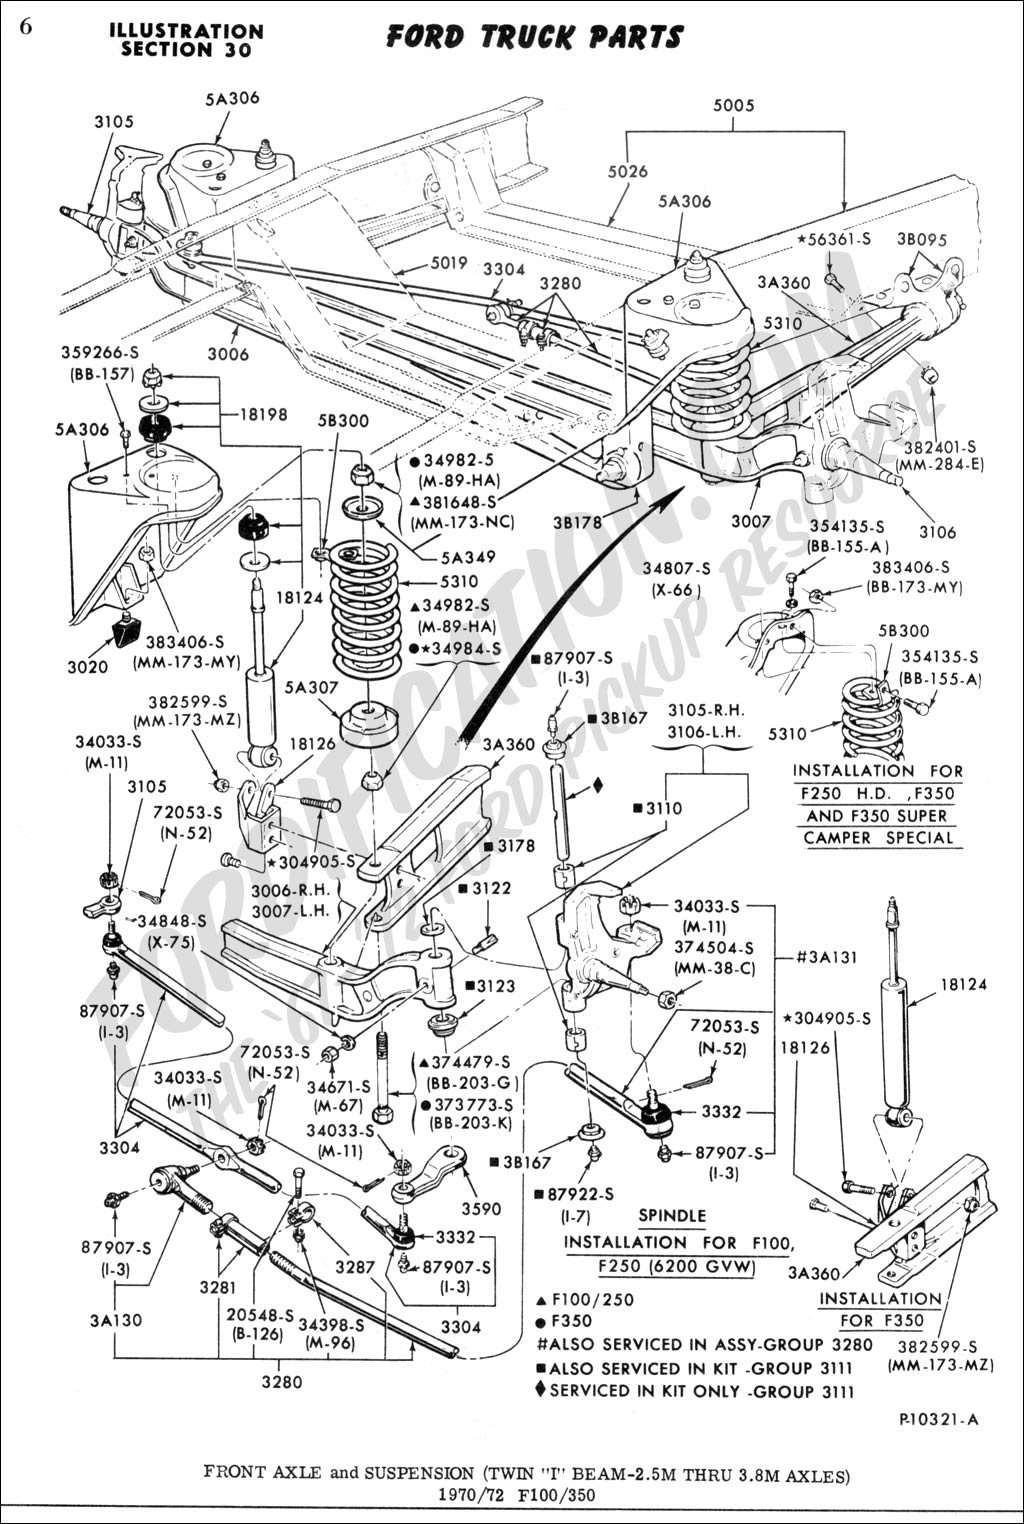 Ford Front Axle Diagram : Ford f parts diagram free engine image for